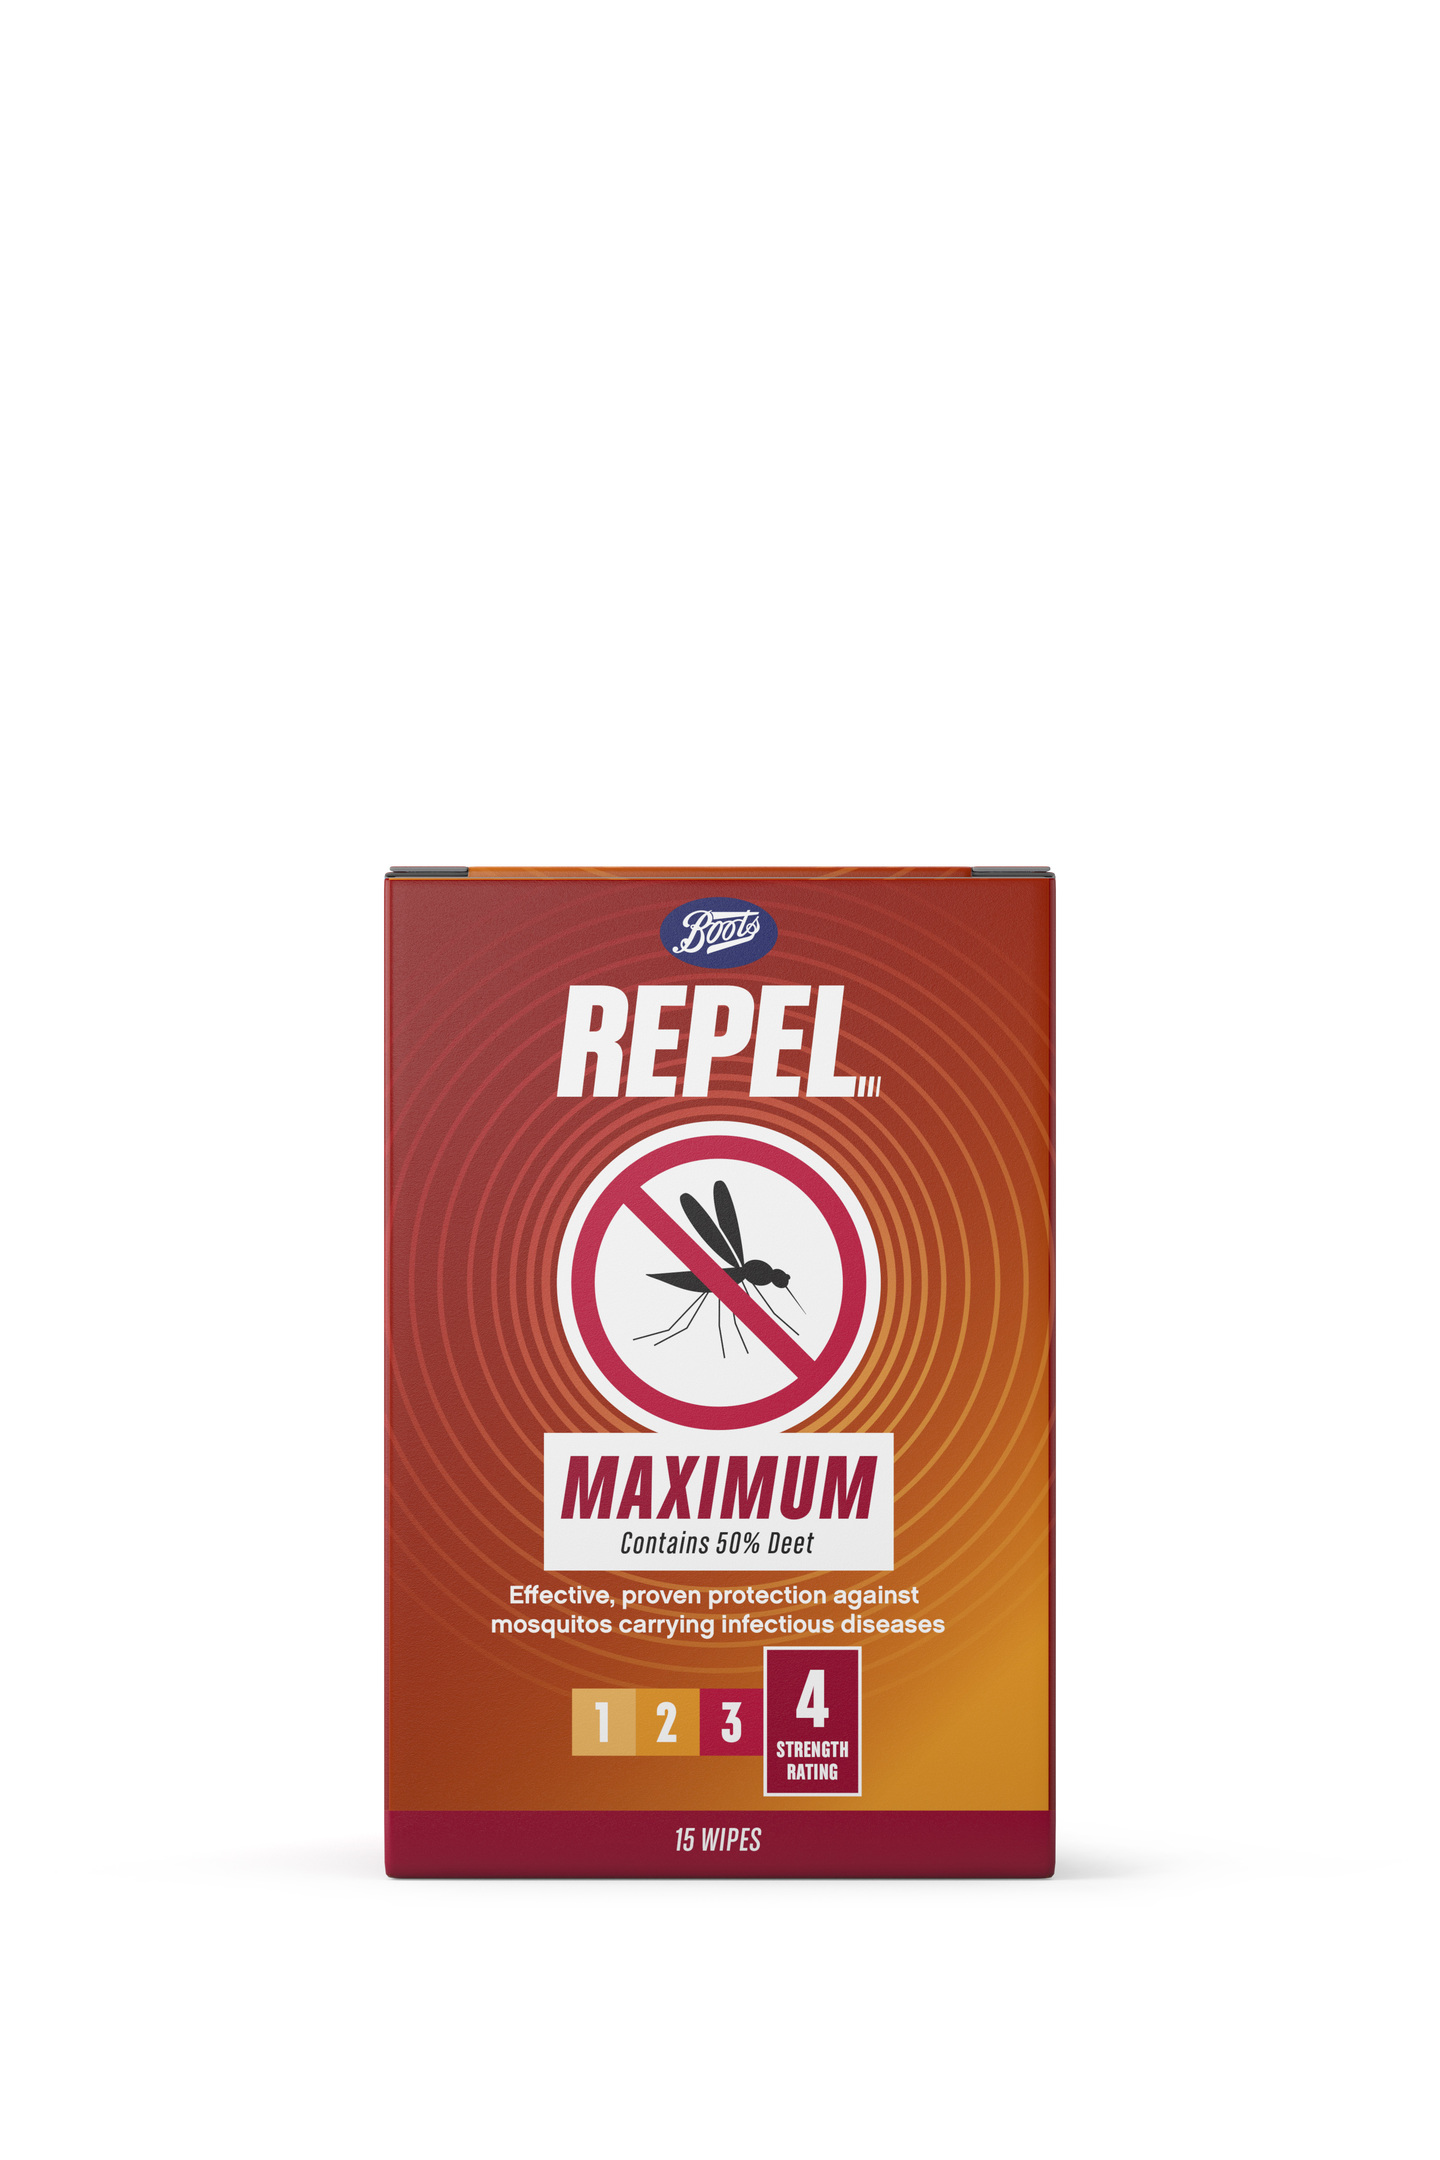 Boots Repel Maximum Wipes Box Render